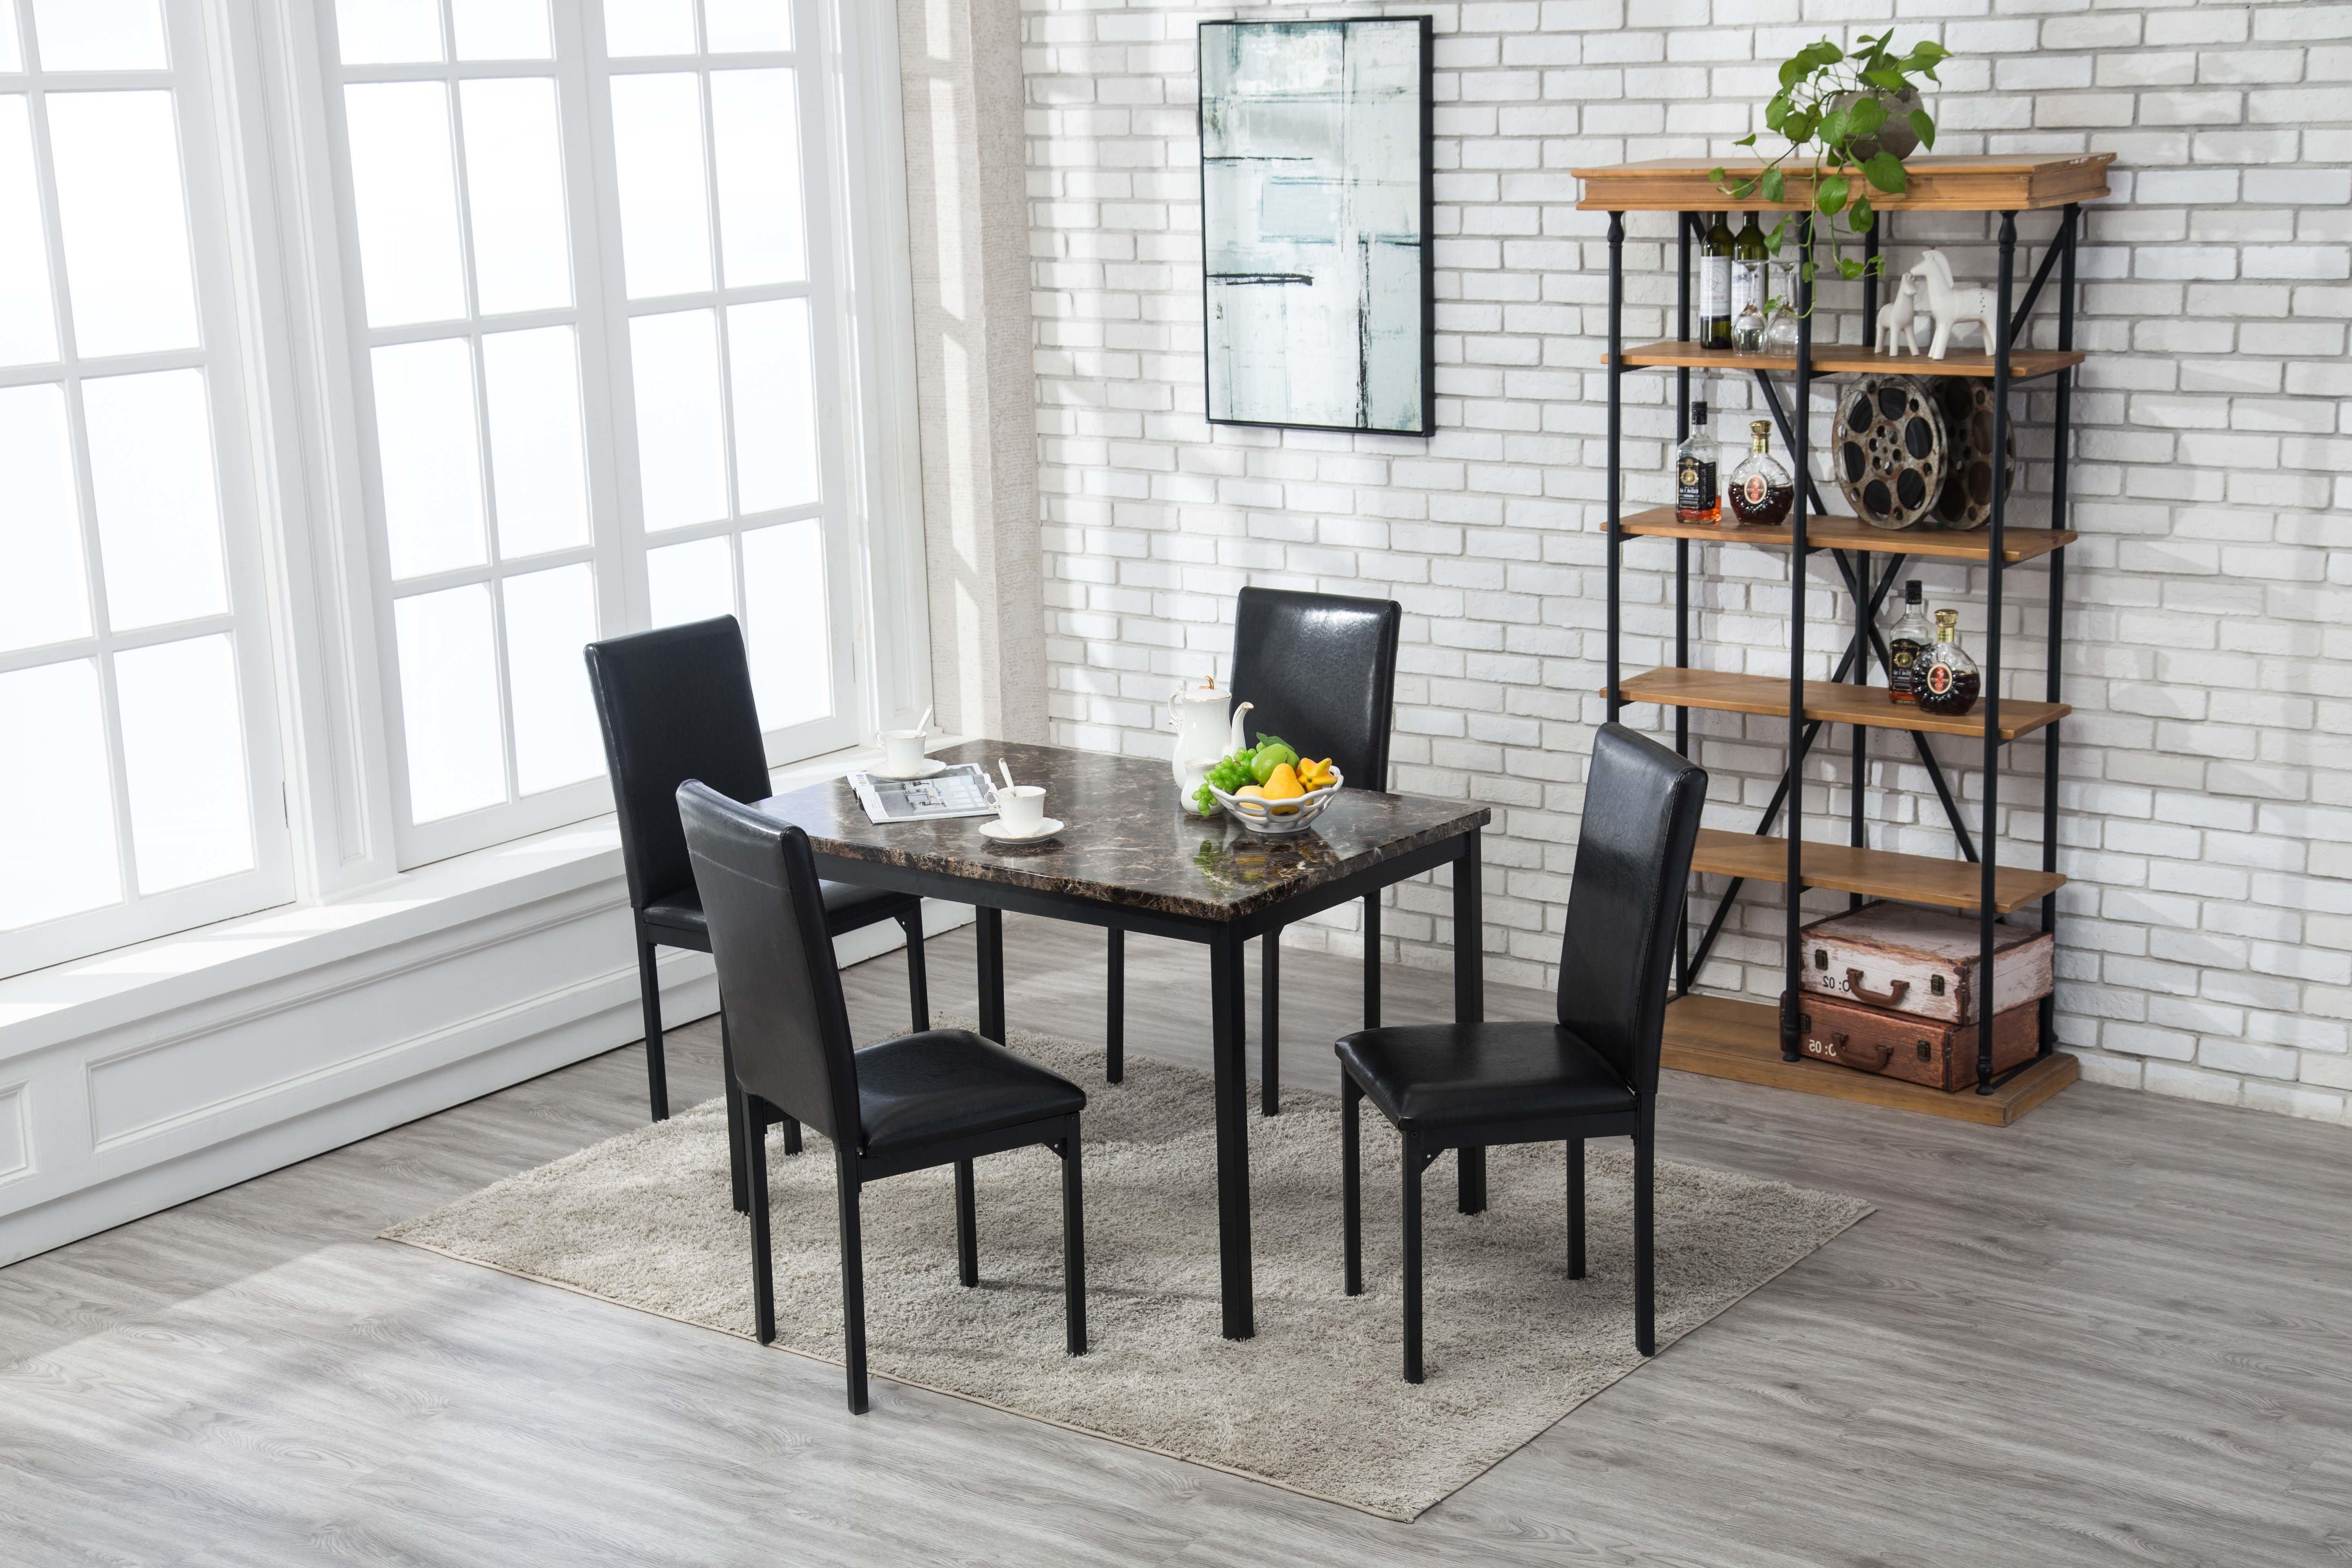 Andreana 5 Piece Dining Set Inside Well Liked Taulbee 5 Piece Dining Sets (View 9 of 20)